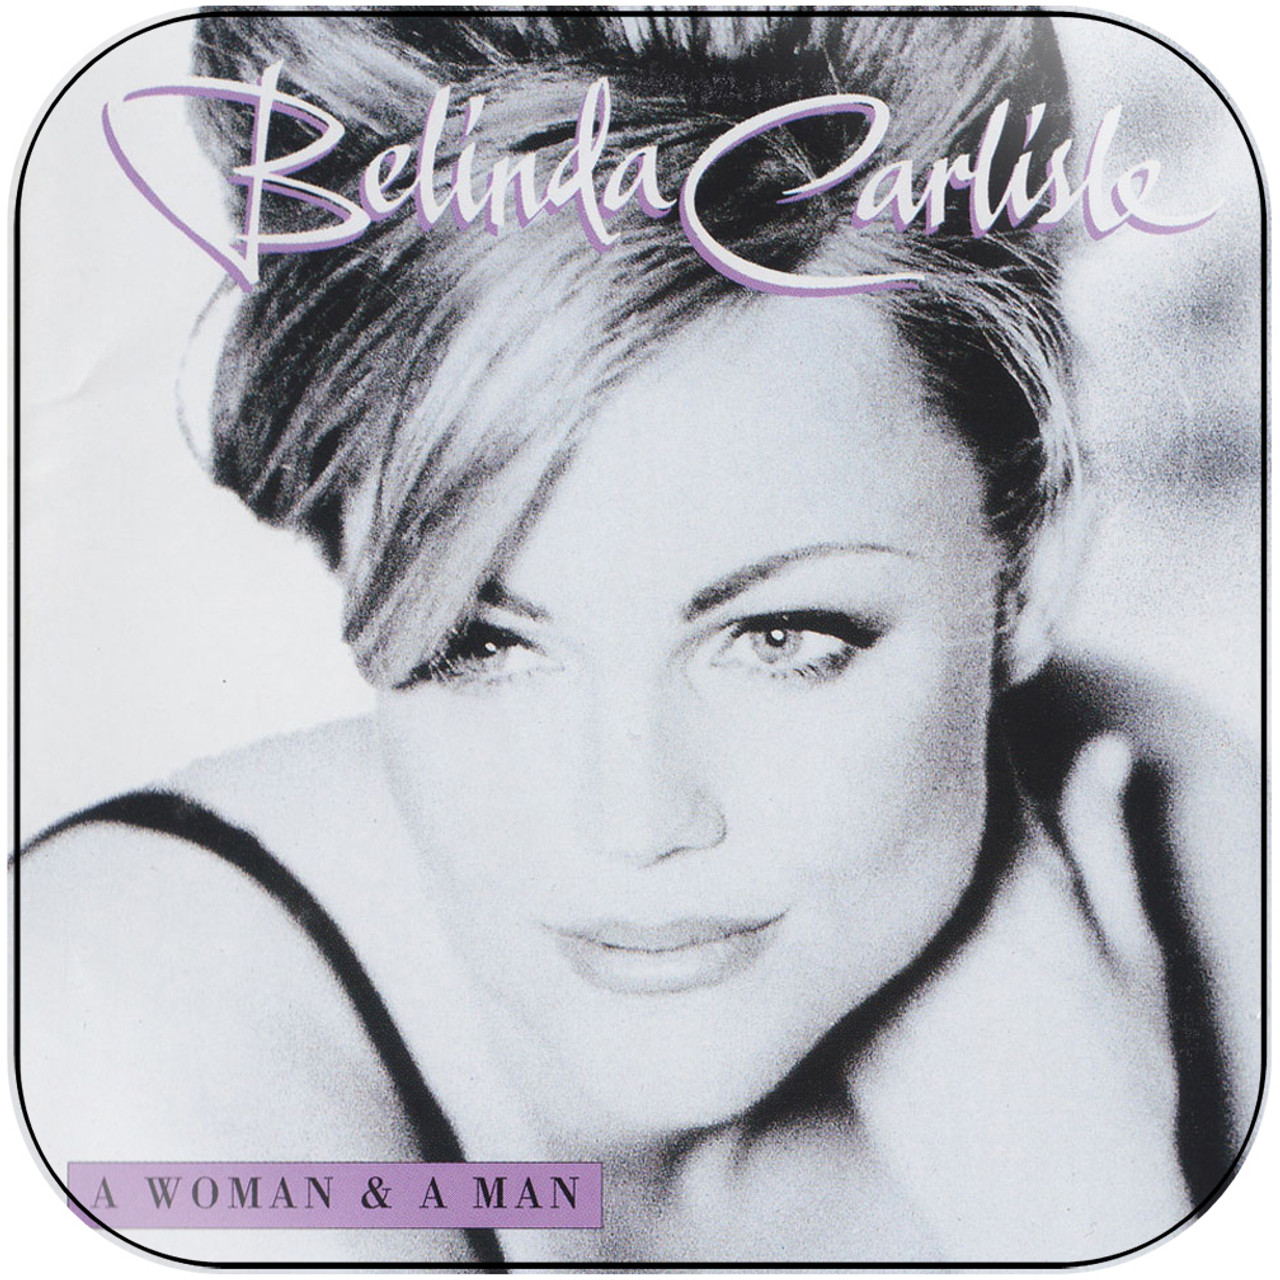 Belinda Carlisle A Woman A Man Album Cover Sticker Album Cover Sticker